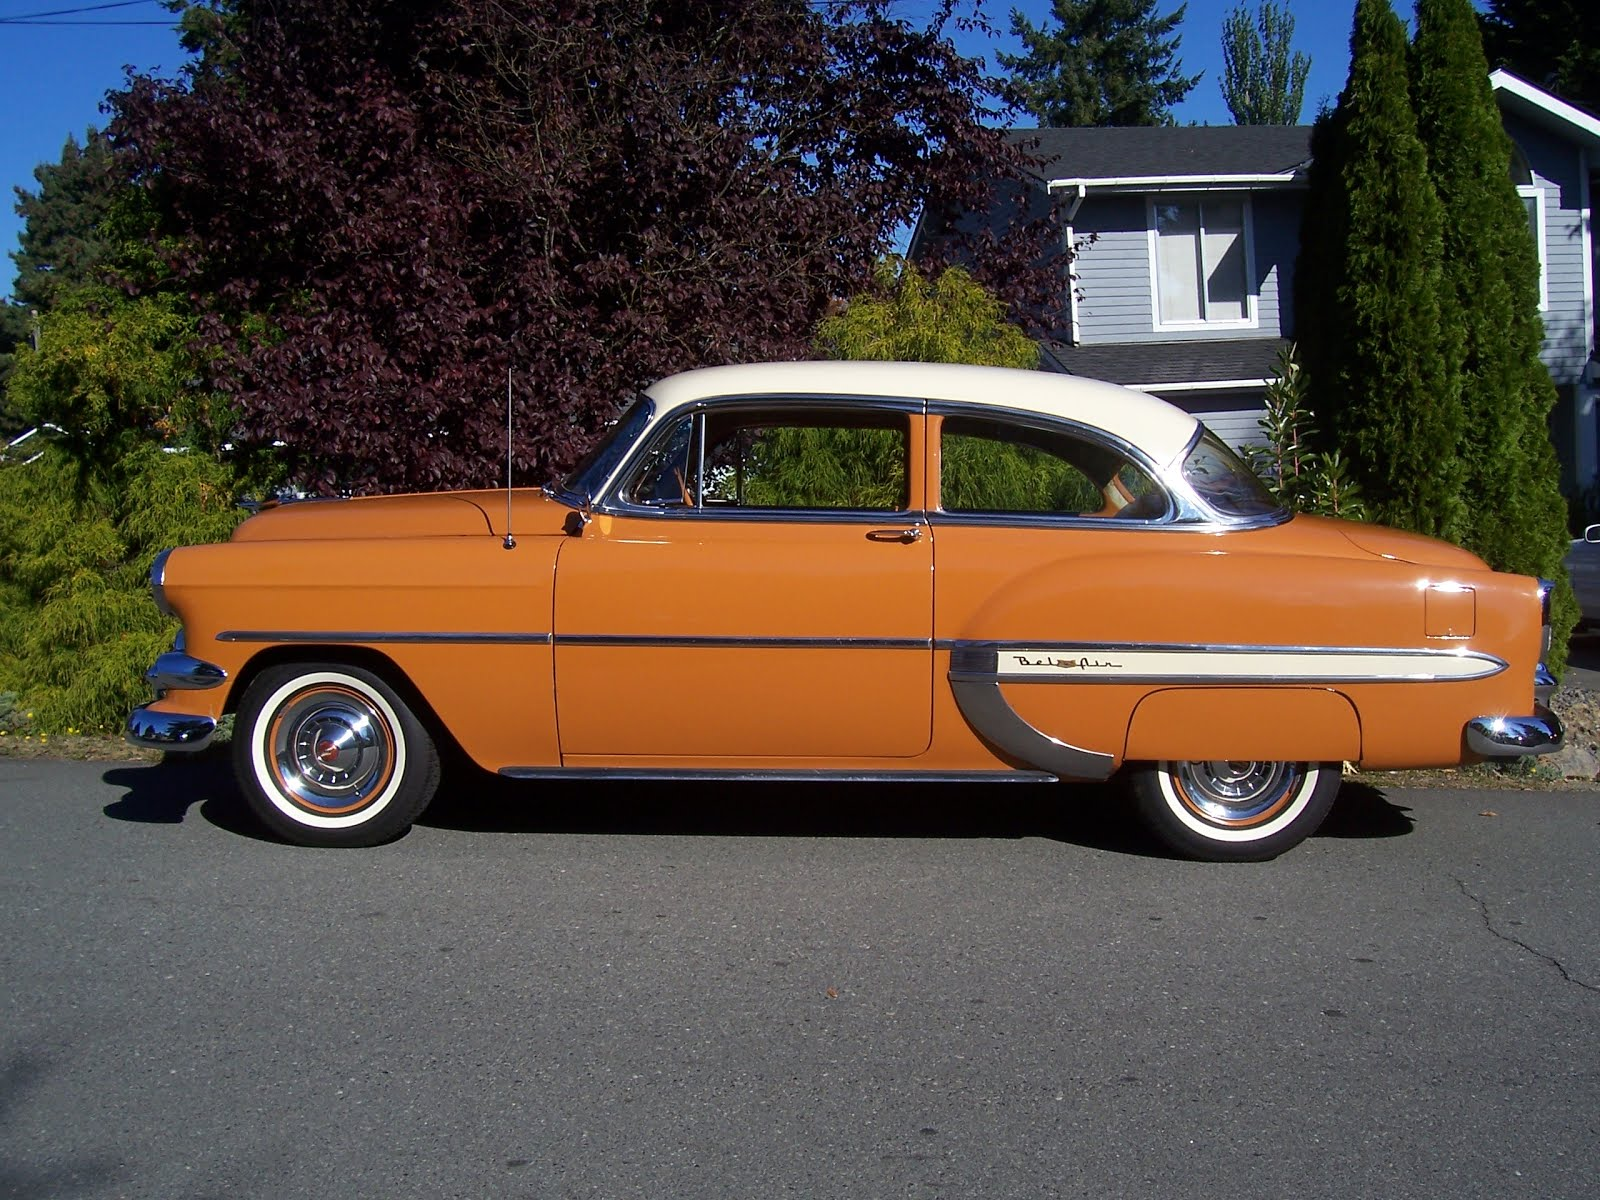 OLD PARKED CARS Reader Submission 1954 Chevrolet Bel